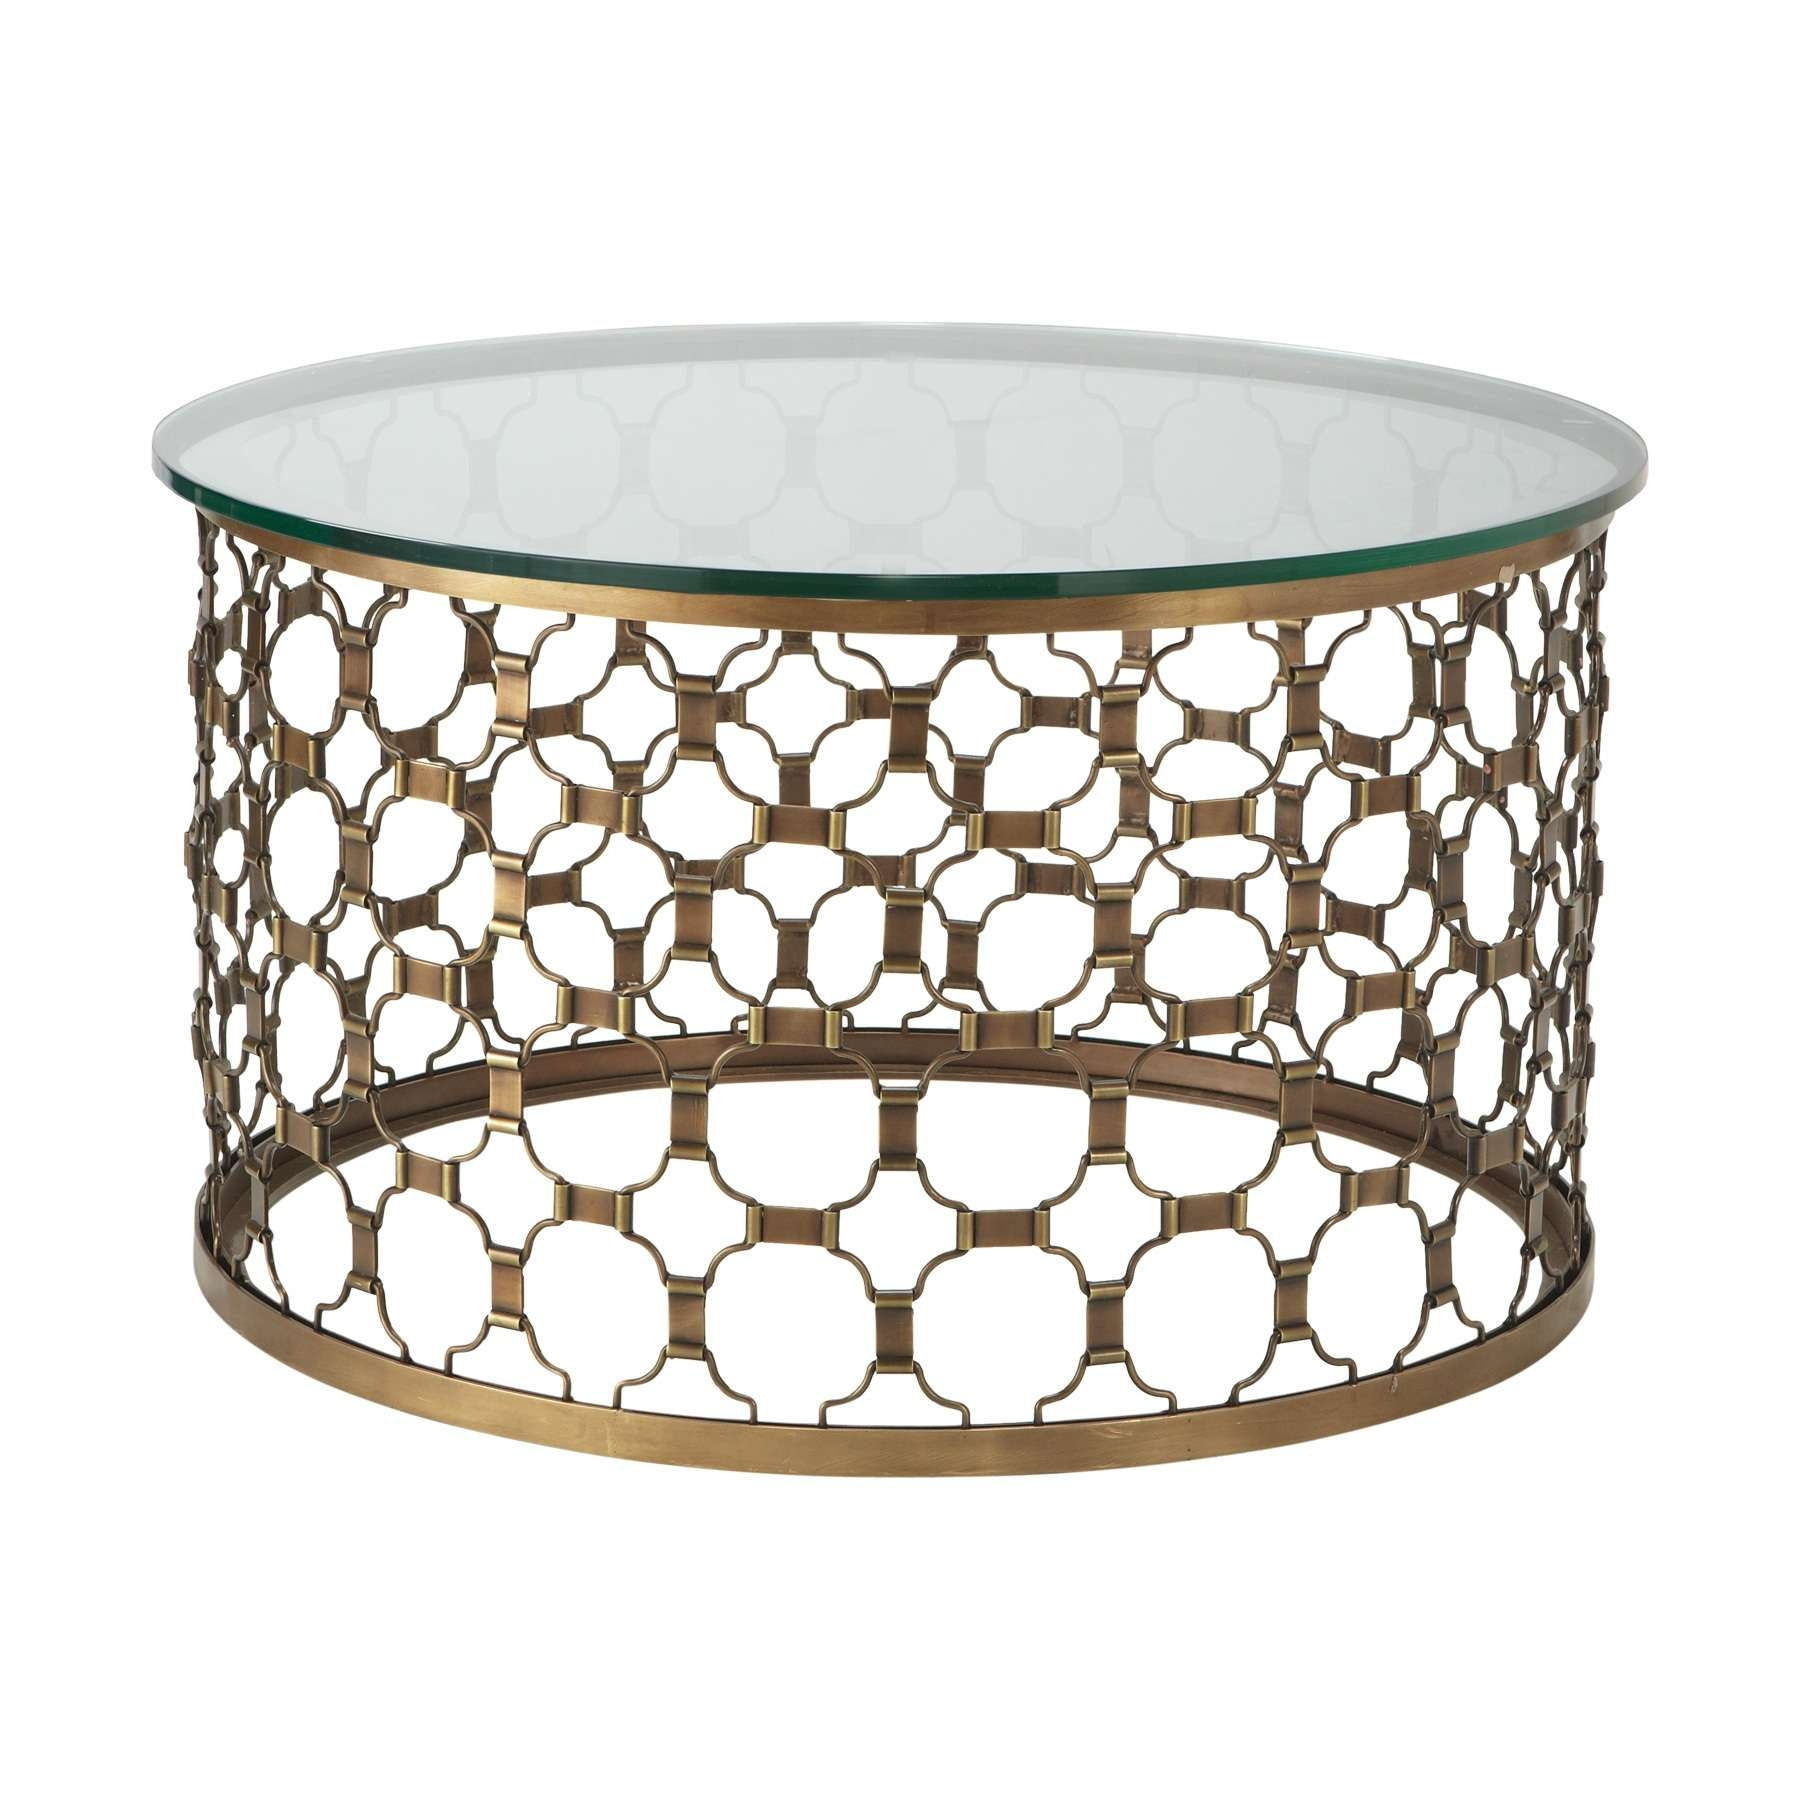 Coffee Tables : Round Coffee Table Wood And Metal Naomi Elegant Pertaining To Preferred Metal Round Coffee Tables (View 8 of 20)